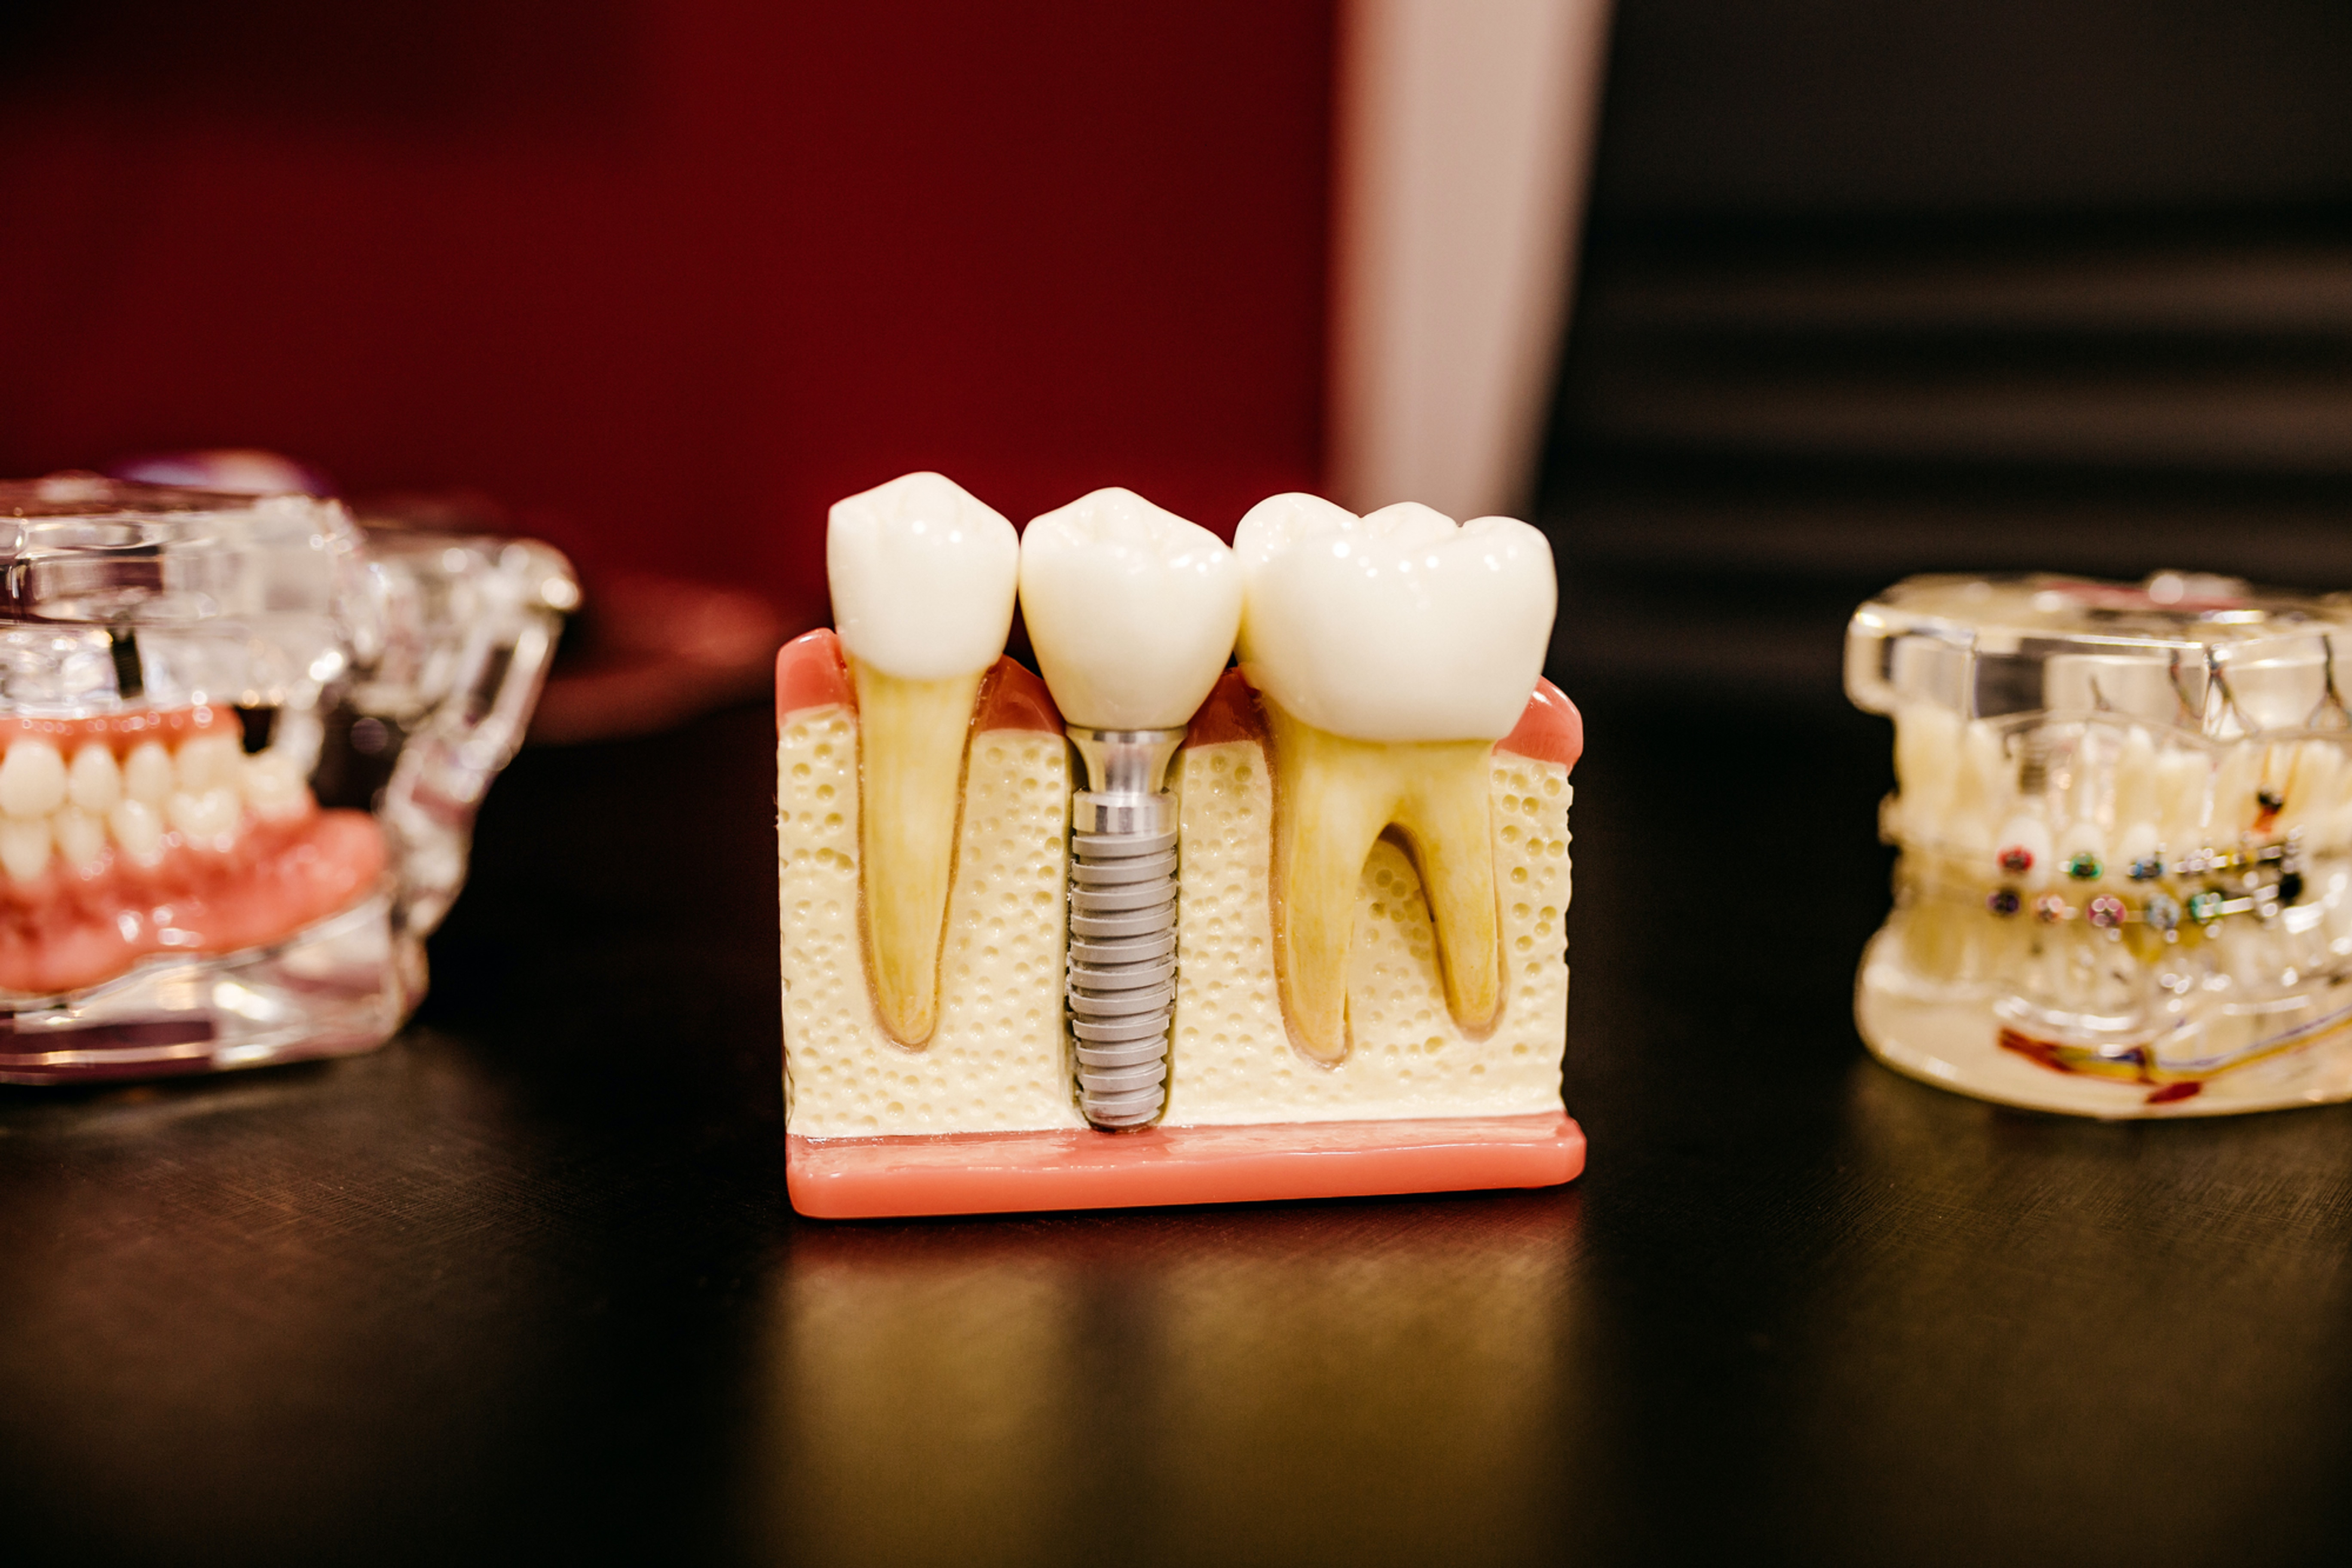 Root canal treatment (3 canals)